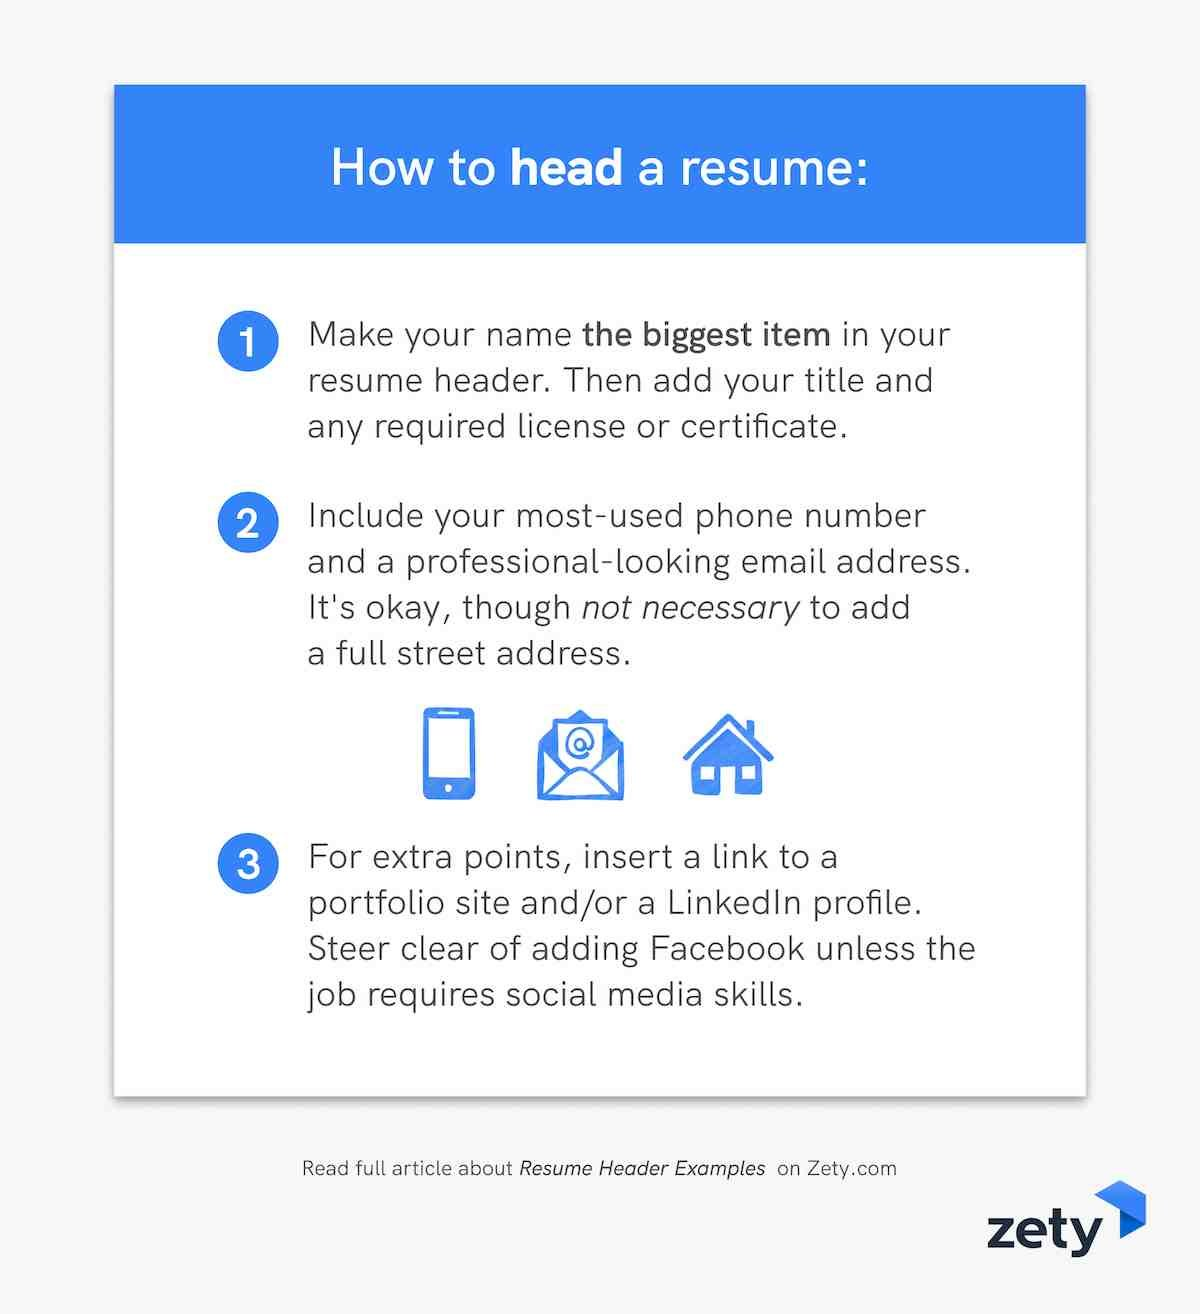 How to head a resume